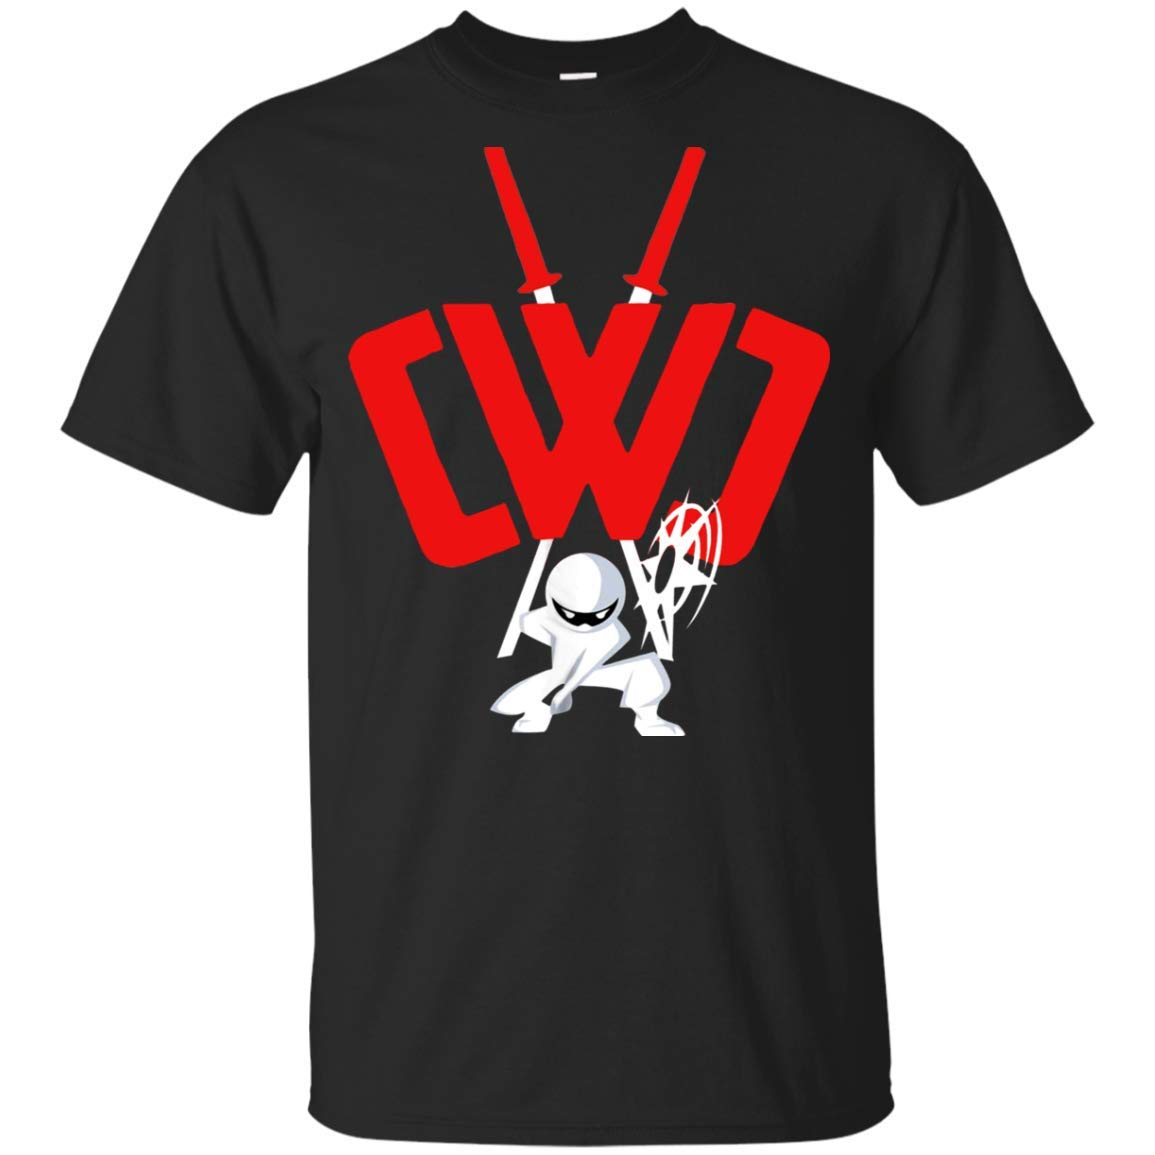 46a269e64d1f Amazon.com: CWC Chad Wild Clay Ninja T-Shirt Sword & Weapon Gift for Kid:  Clothing